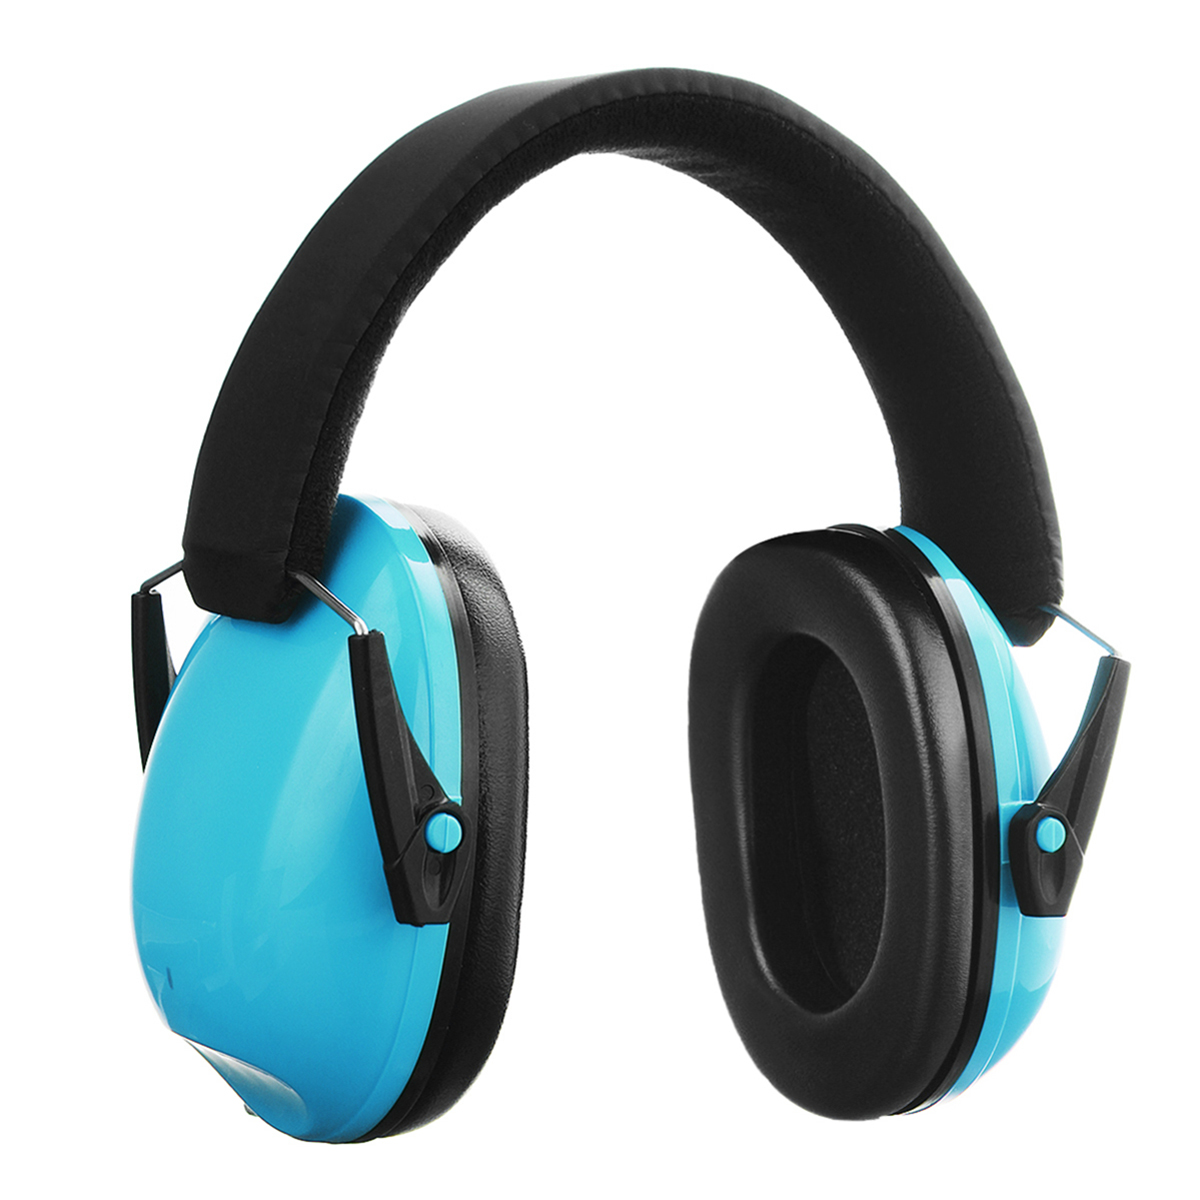 Sealed Walkers Baby /& Kids Noise Reducing Blue Earmuffs!! New!